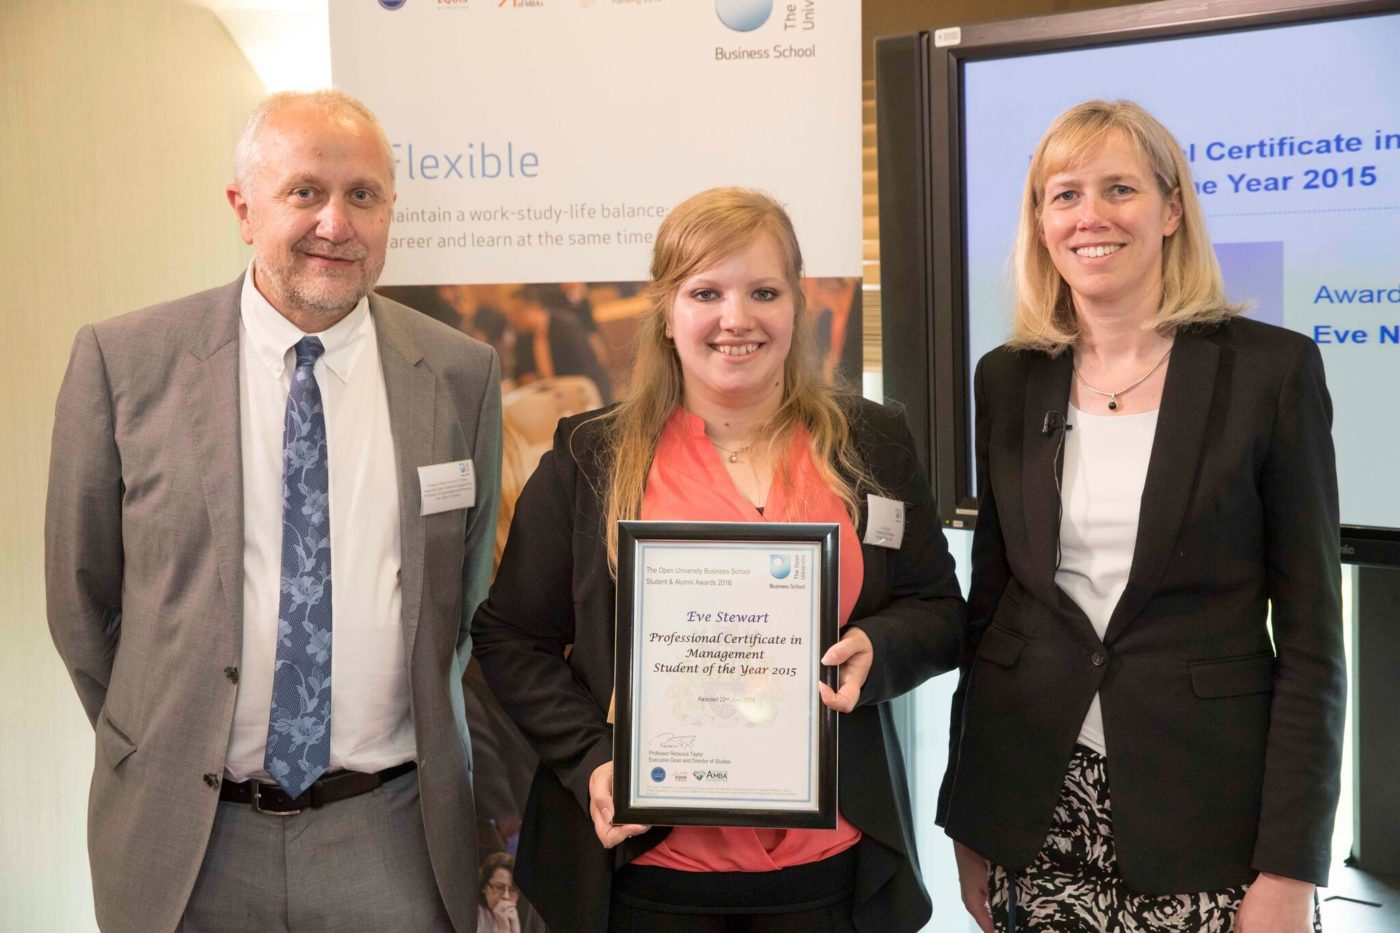 Ou Professional Certificate In Management Student Of The Year Award